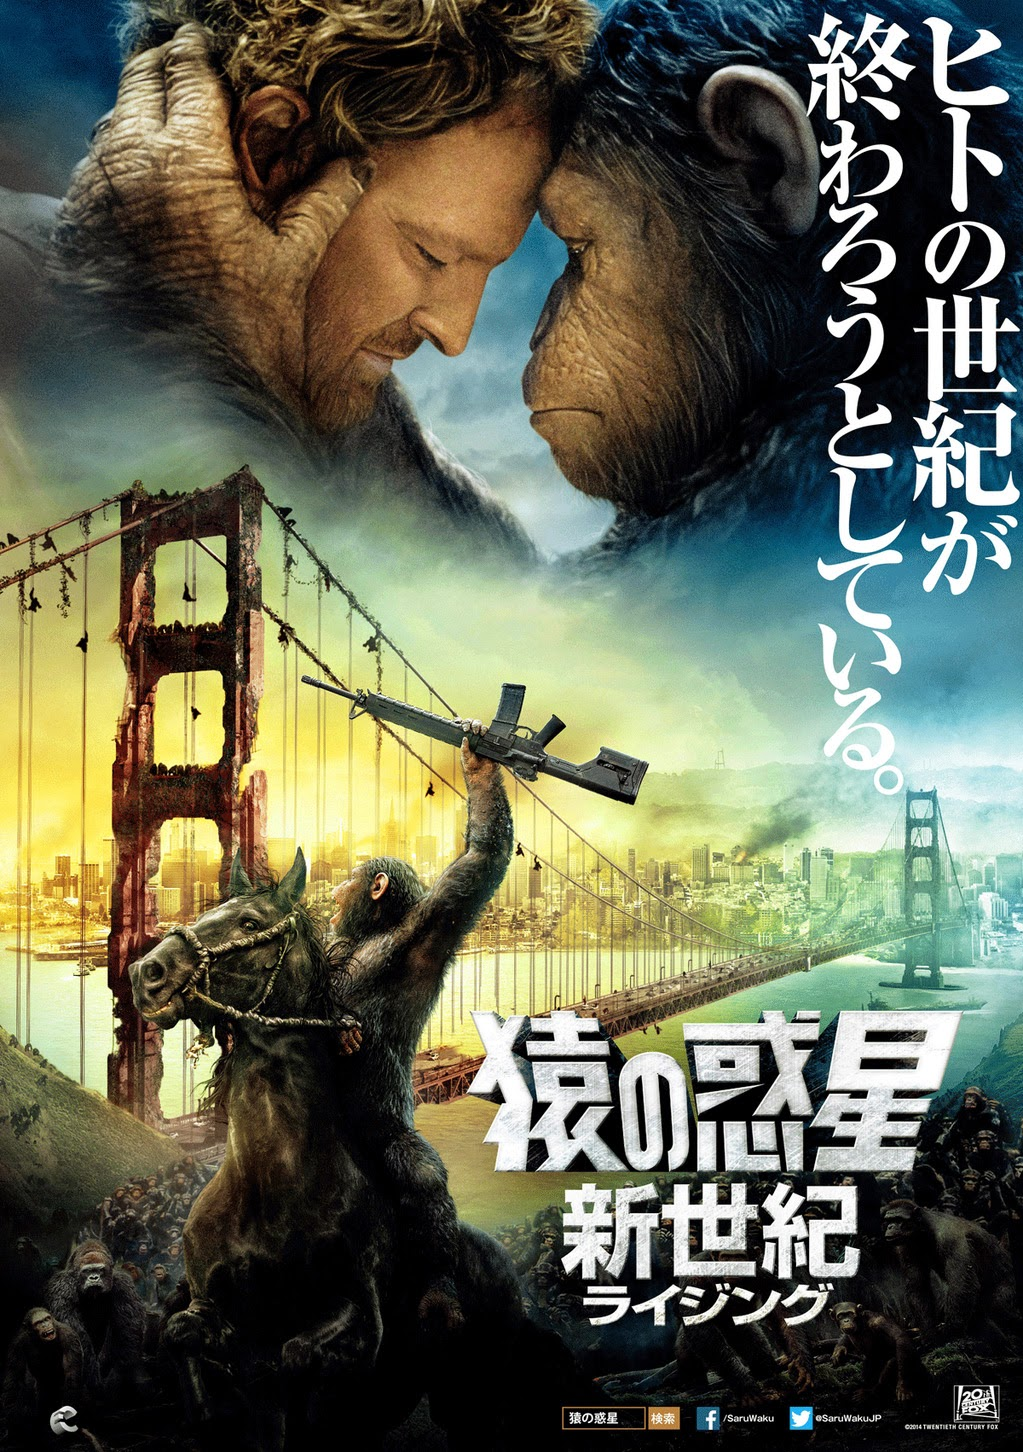 http://4.bp.blogspot.com/-s8tn5HzTjCo/U8bIouB4HxI/AAAAAAAAXWo/h9hKS9INVMU/s1600/Dawn_Of_The_Planet_Of_The_Apes_Official_Poster_International_a_JPosters.jpg